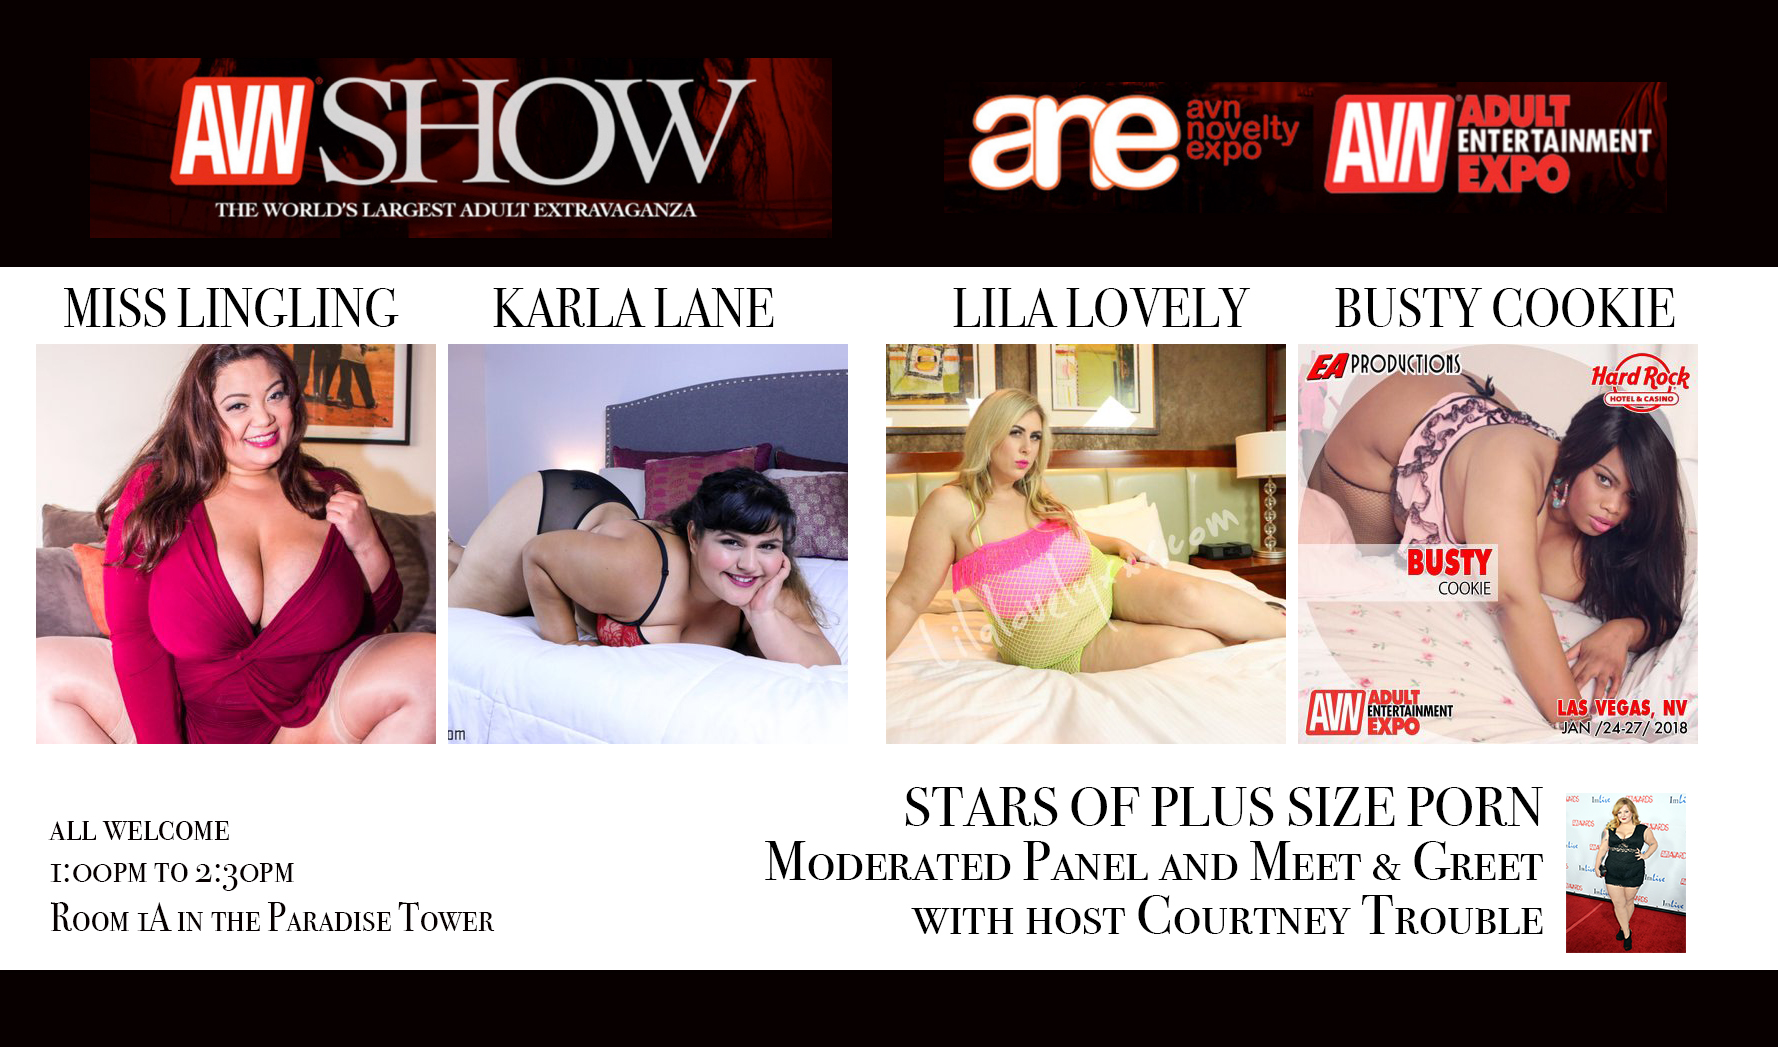 The Very First AVN Workshop Series presents the Stars of Plus Size Panel hosted by Courtney Trouble